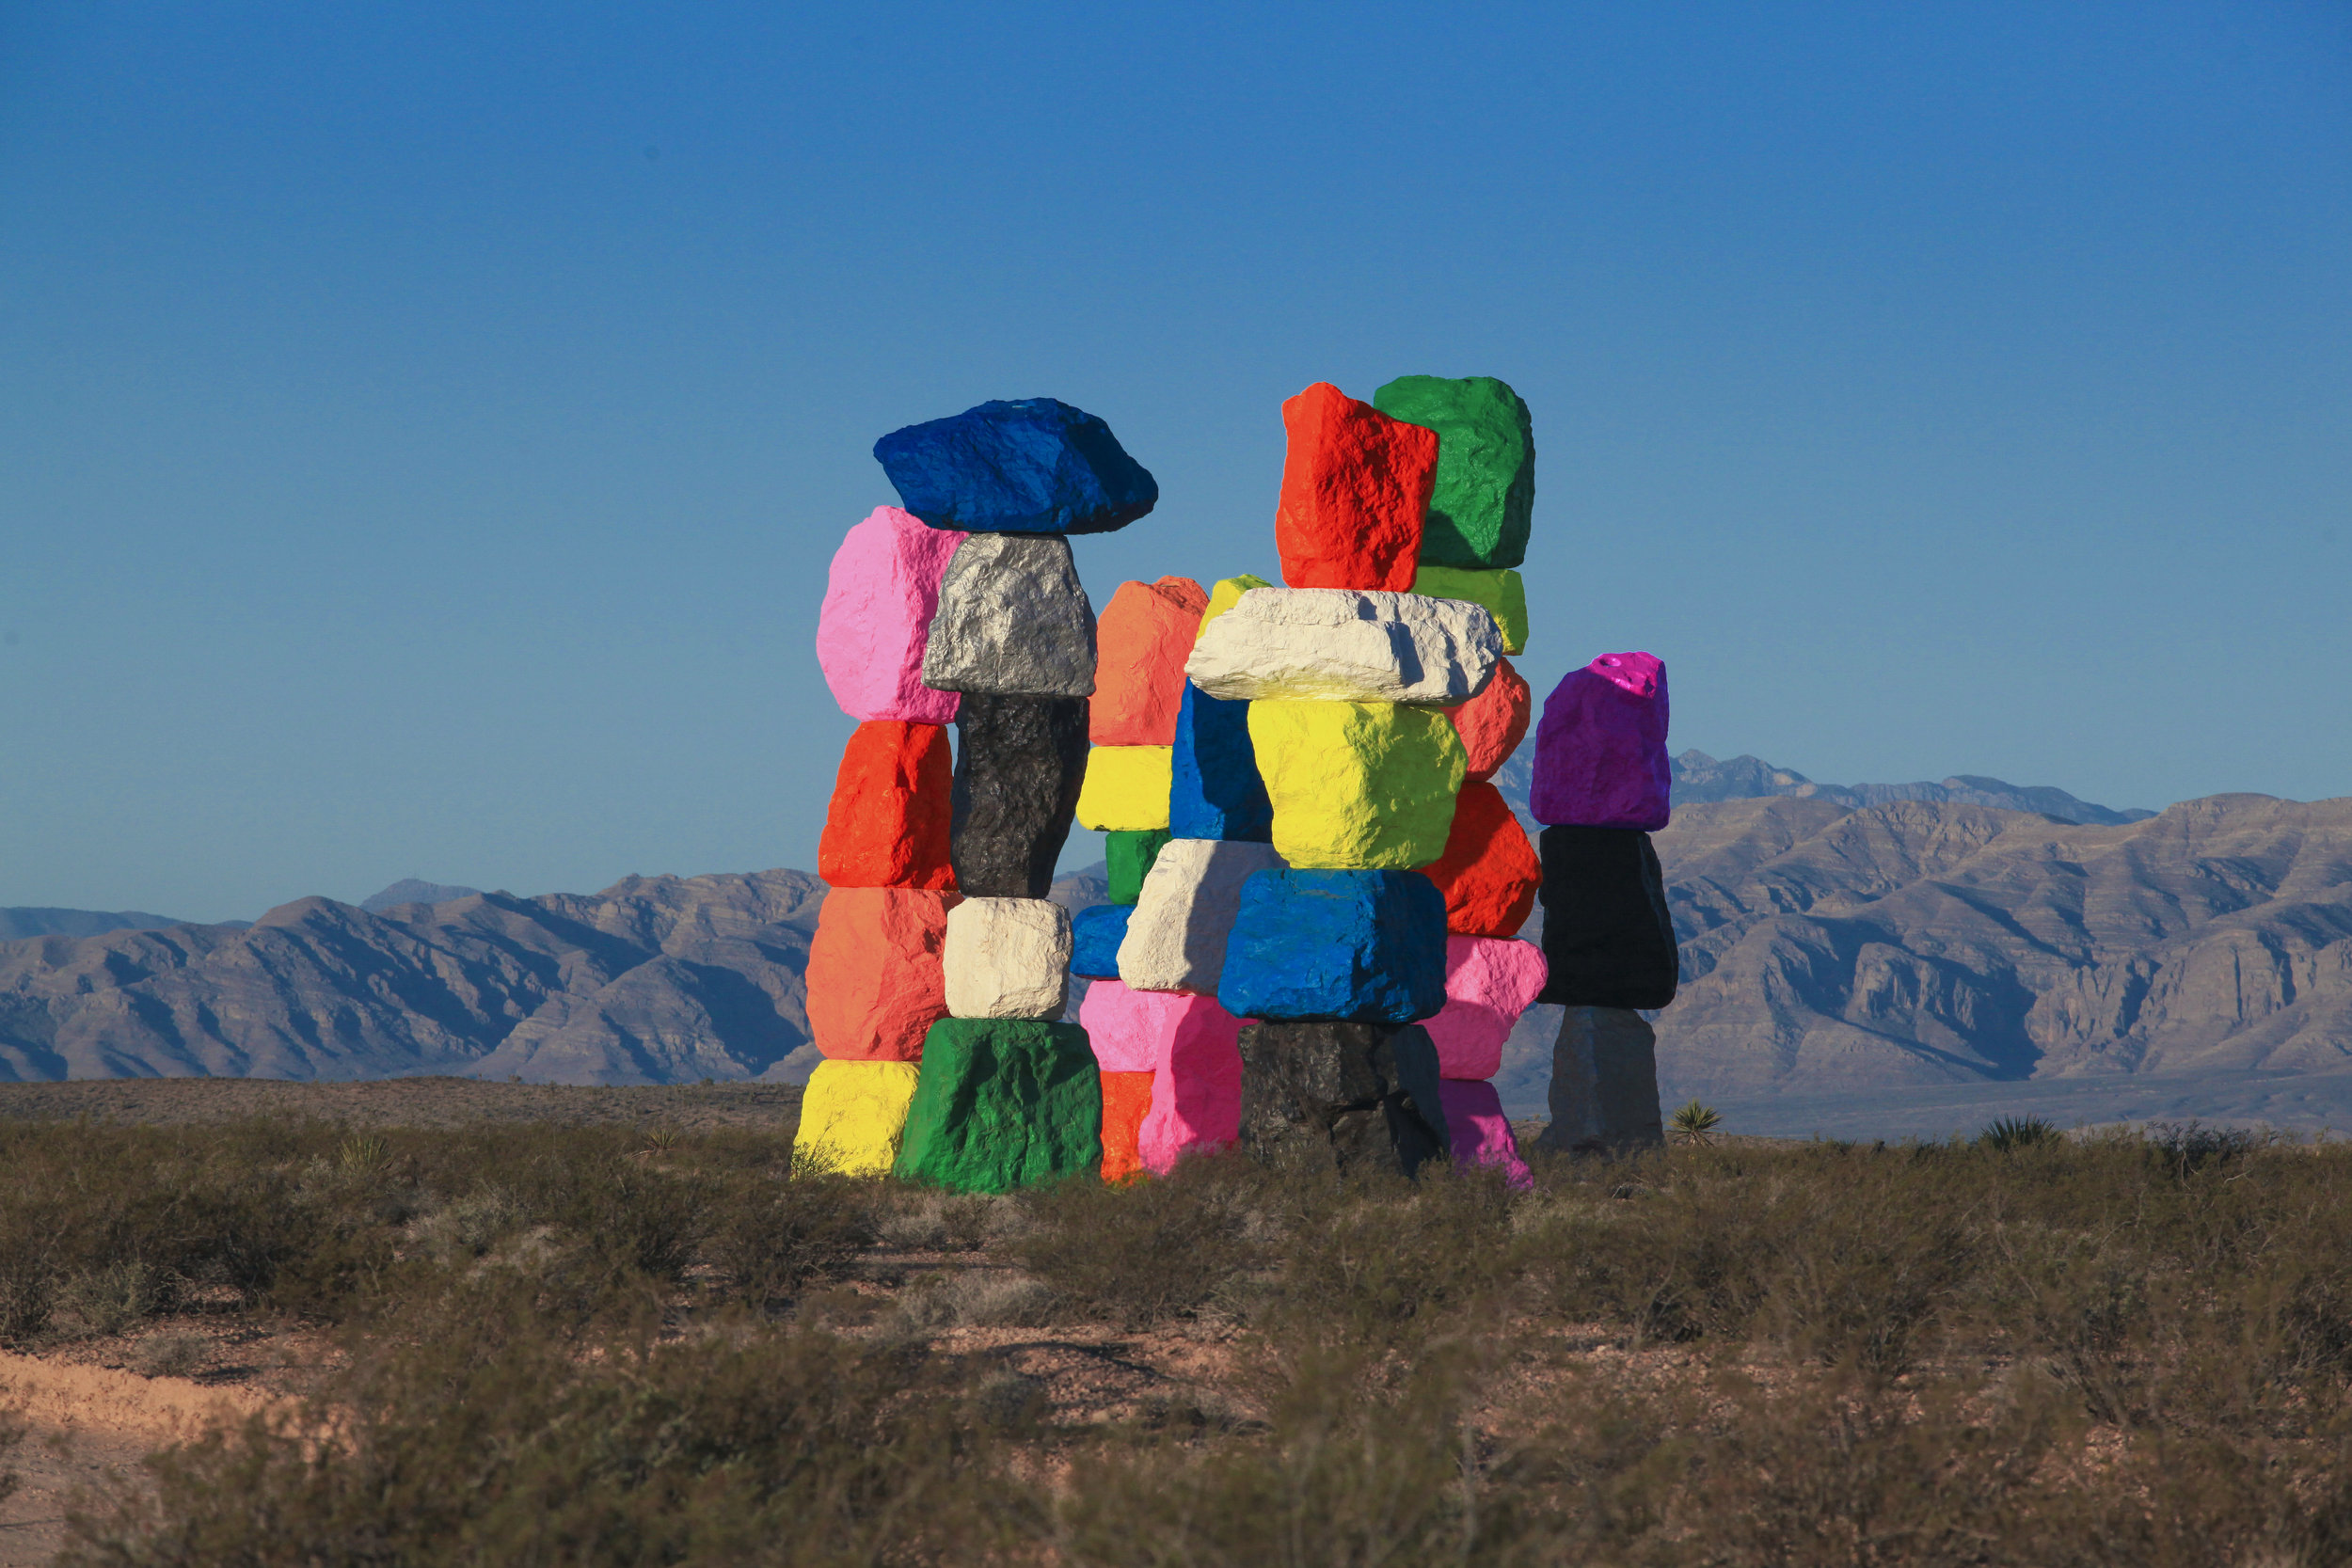 Ugo Rondinone:  Seven Magic Mountains , Las Vegas, Nevada, 2016. Photo by Gianfranco Gorgoni. Courtesy of Art Production Fund and Nevada Museum of Art.